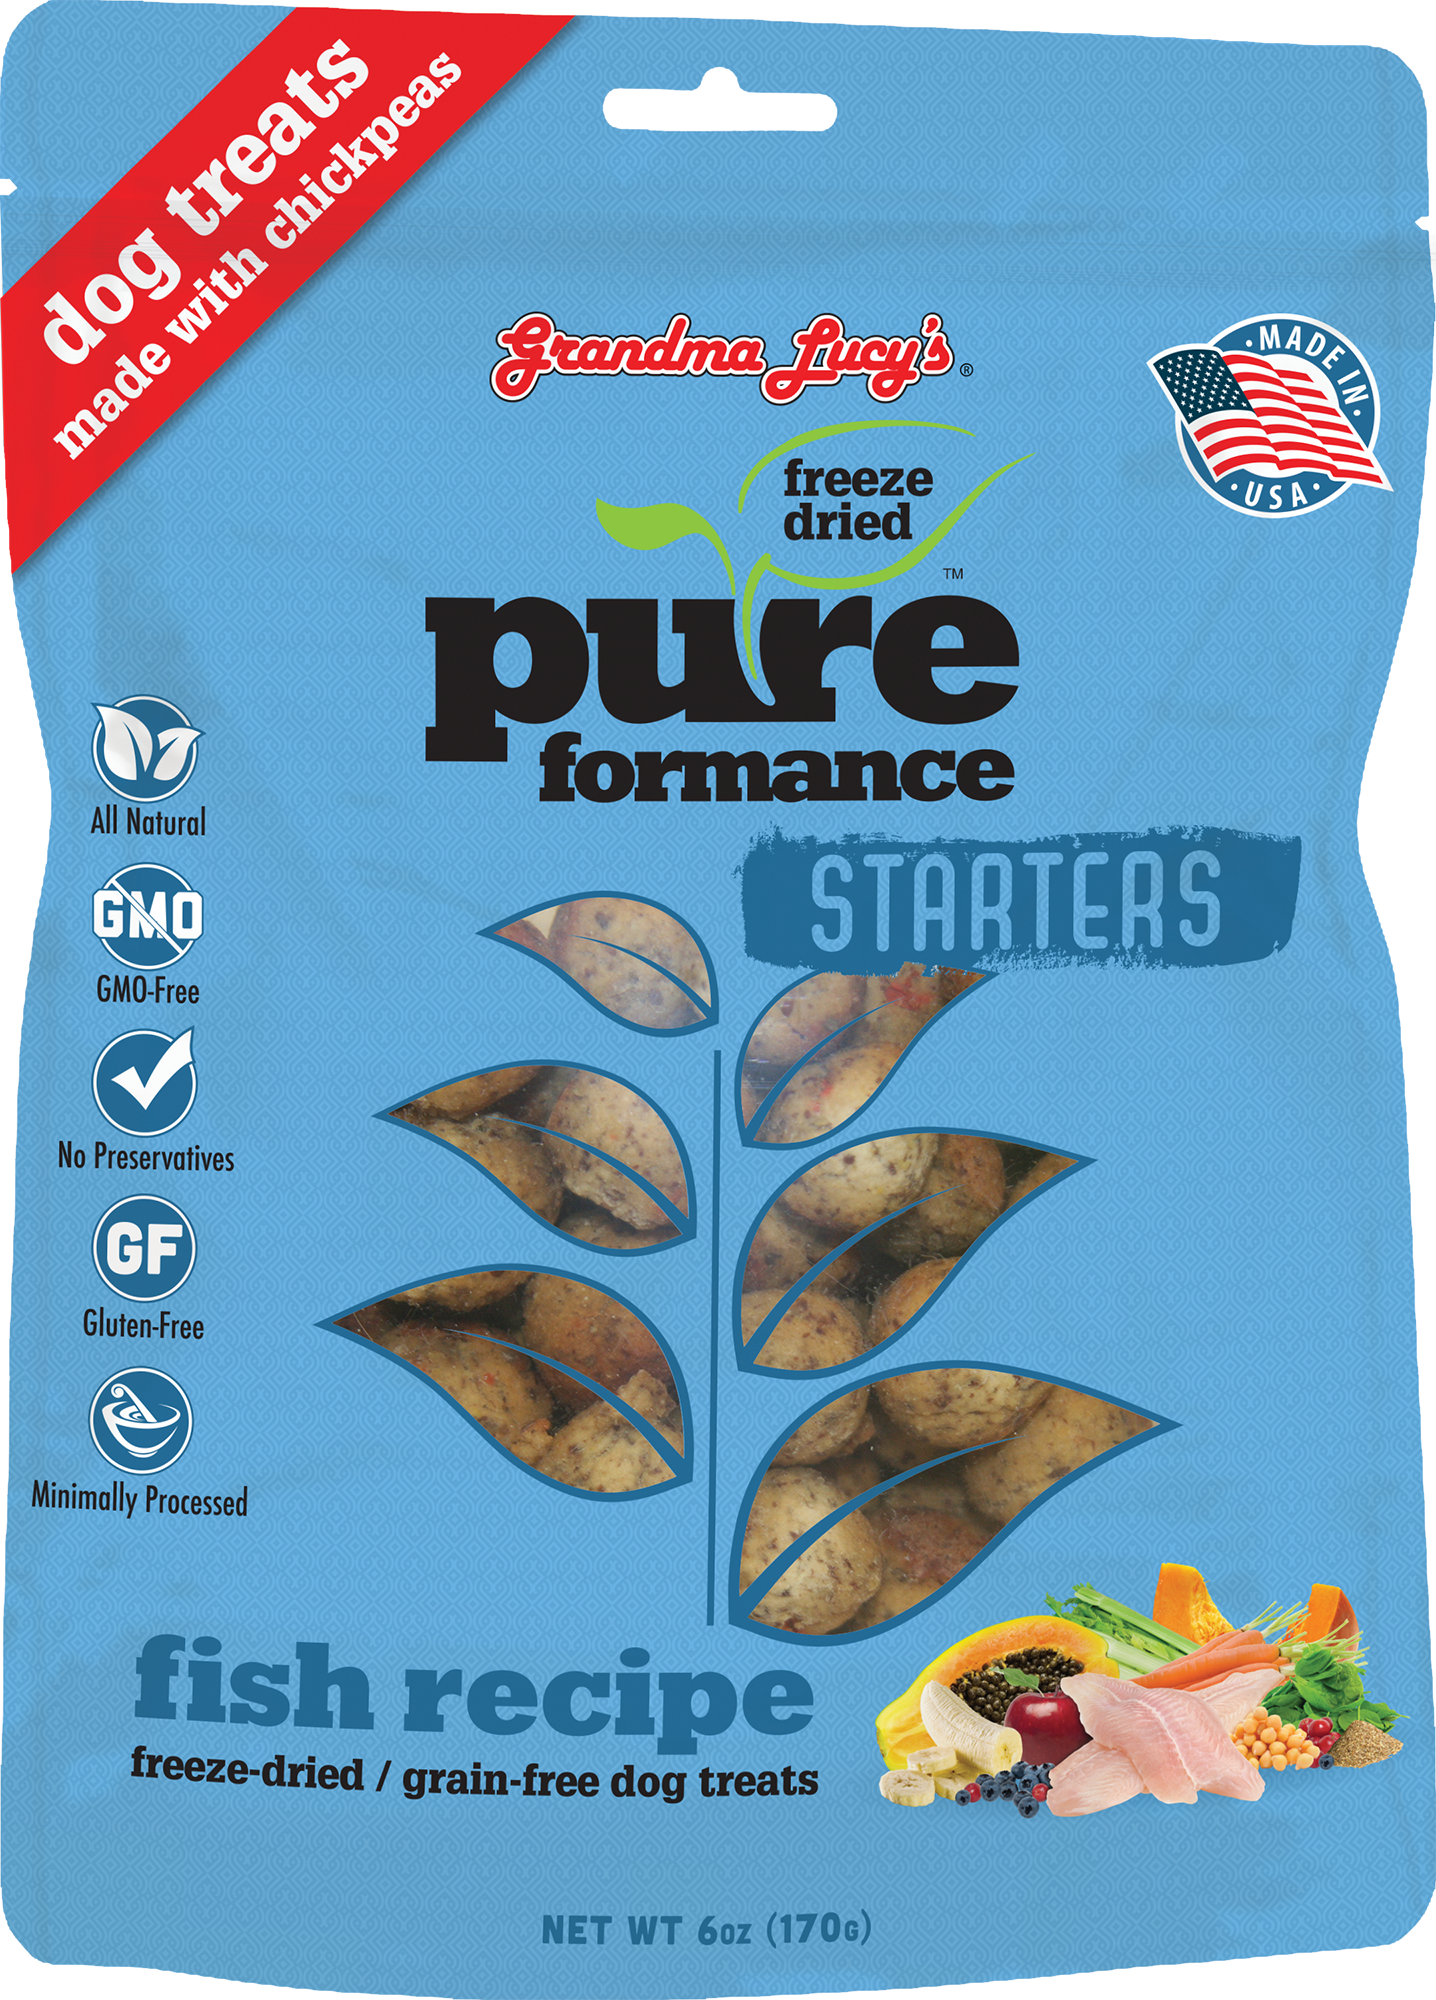 Grandma Lucy's Starters Pureformace Fish 6oz - Treats